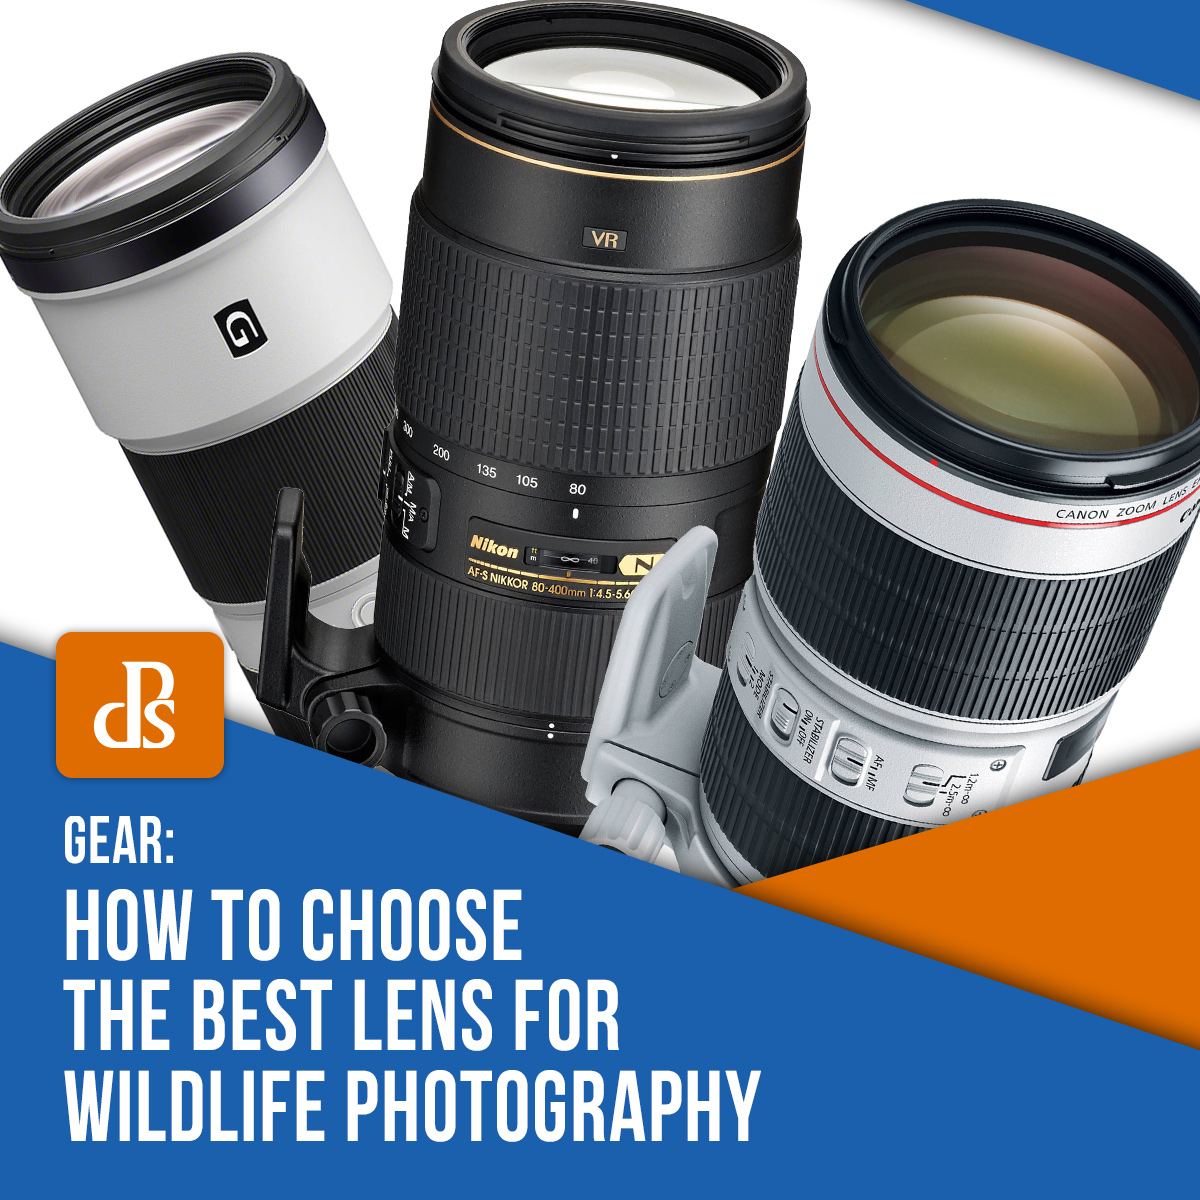 https://i0.wp.com/digital-photography-school.com/wp-content/uploads/2020/04/dps-choose-best-lens-for-wildlife-photography.jpg?ssl=1